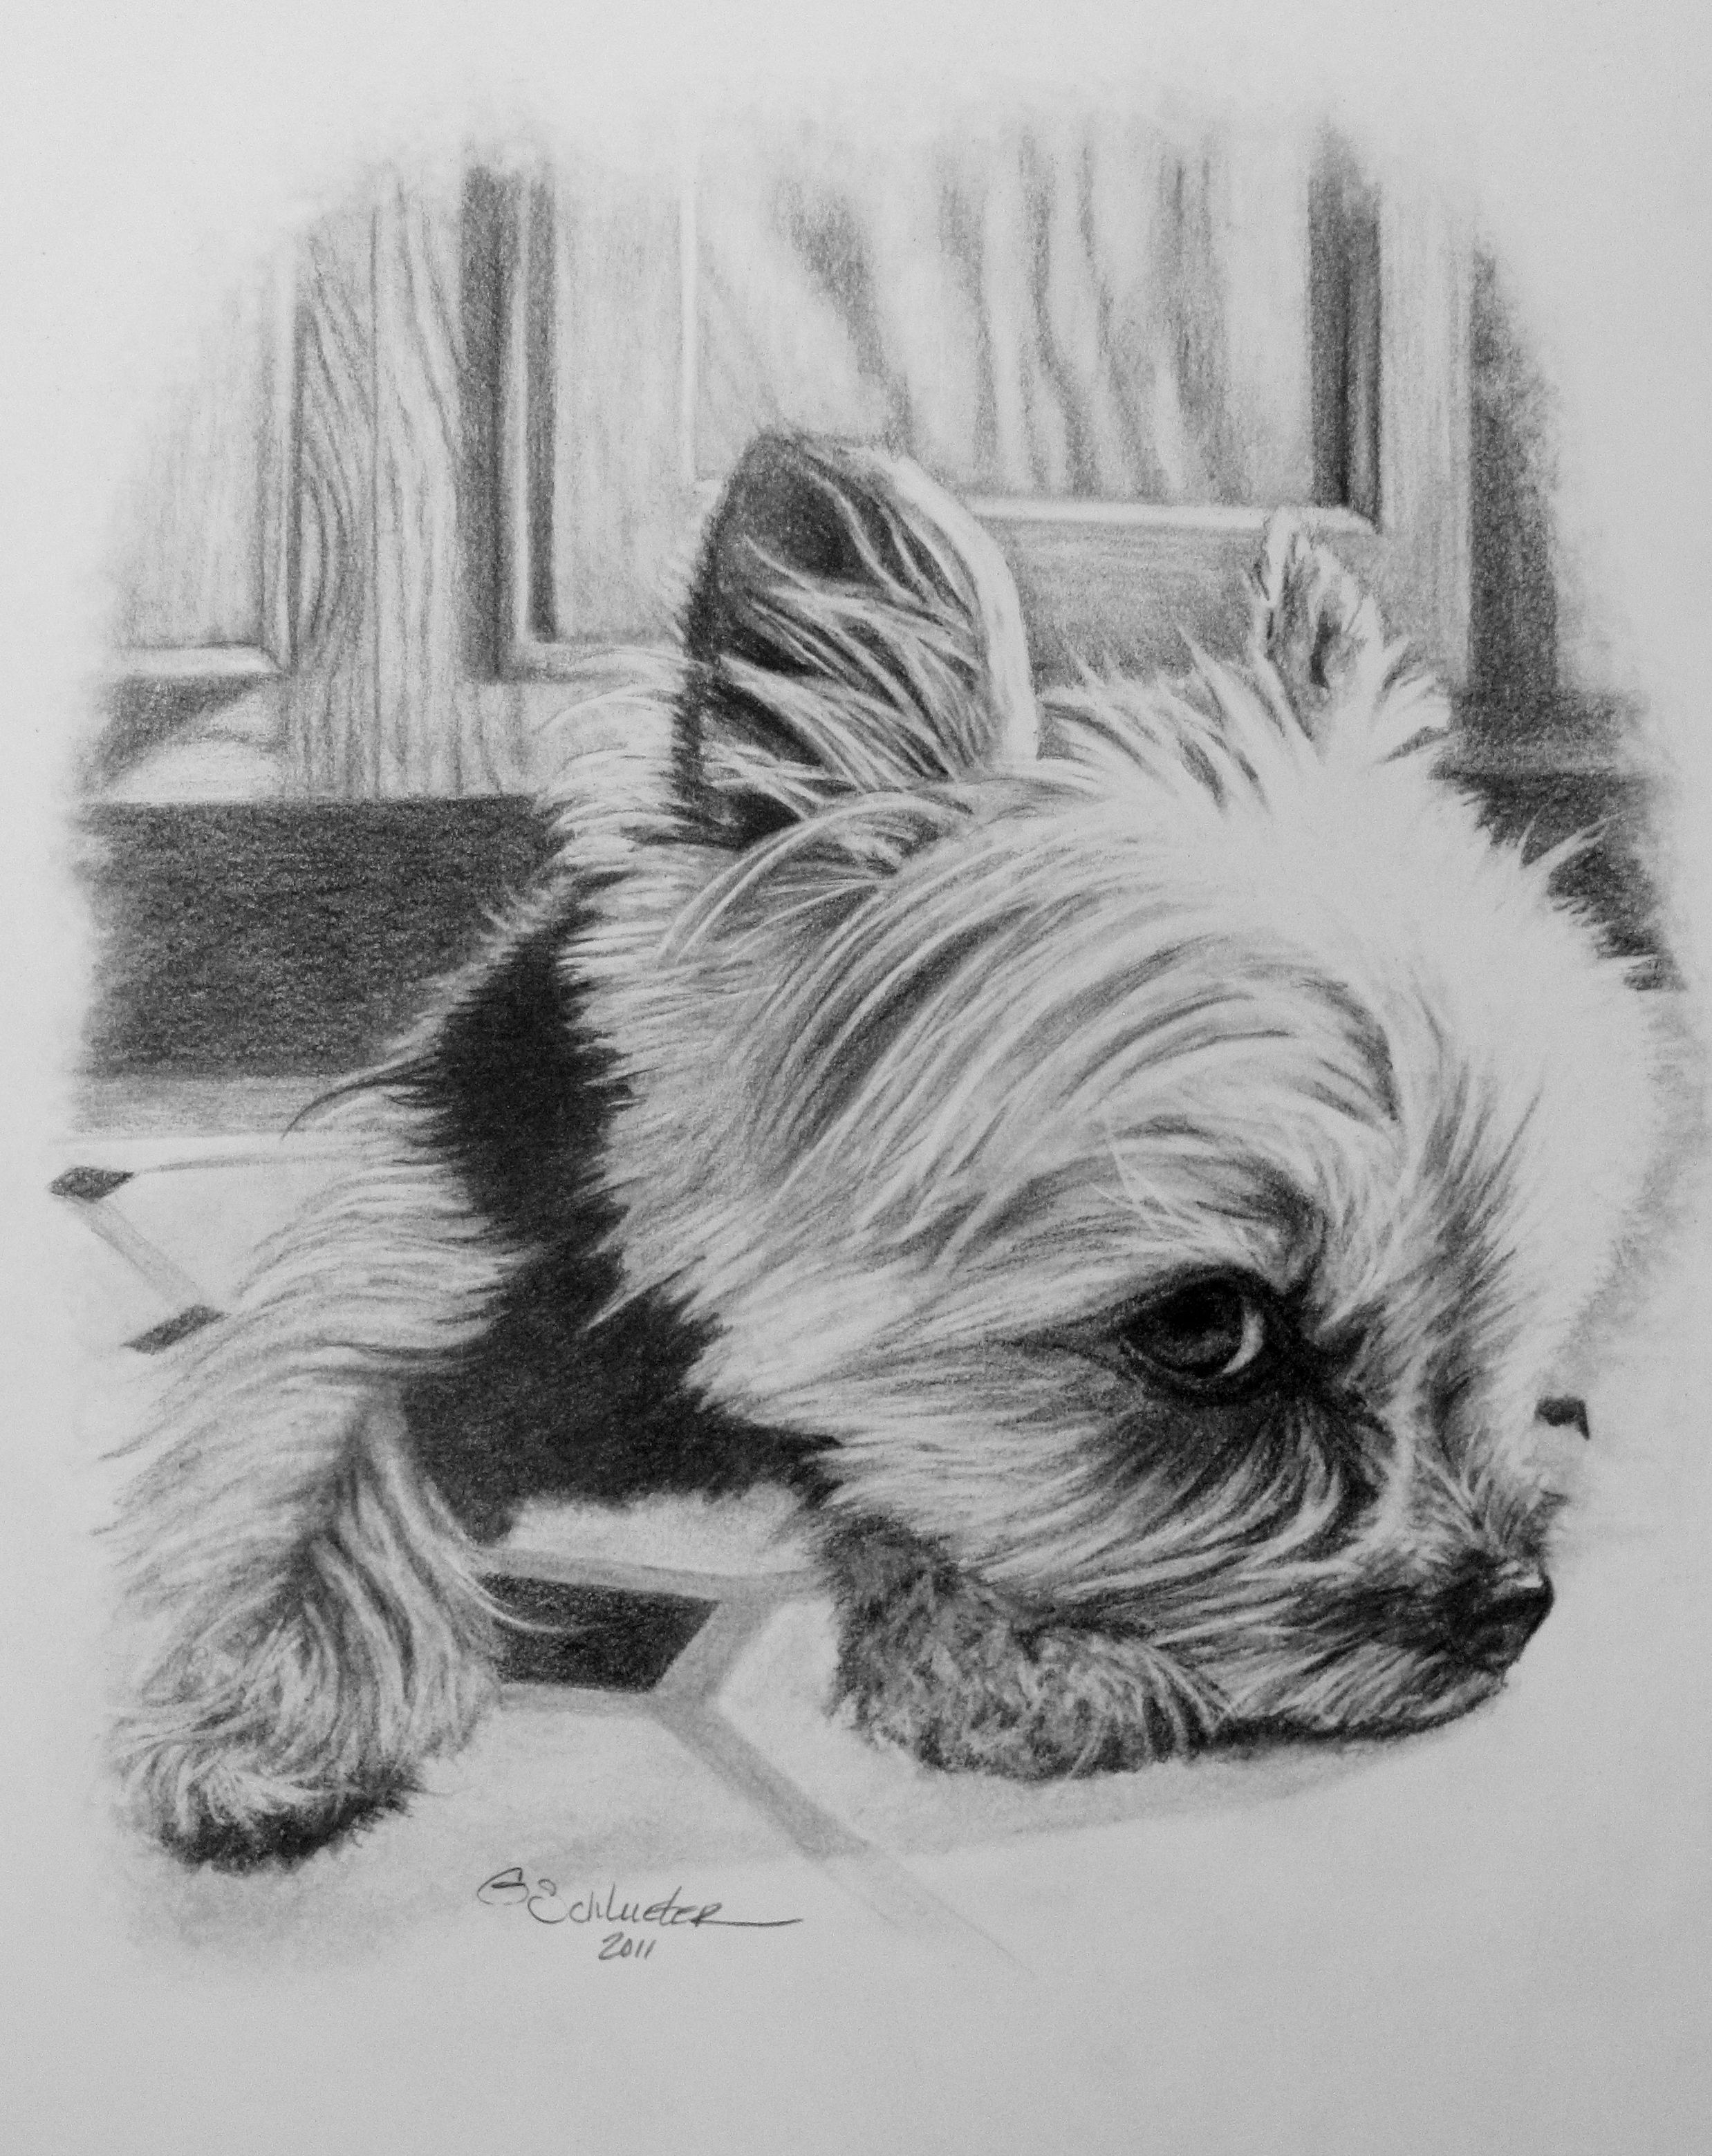 The Little Yorkie Sketch Are You Looking For A Special Unique Gift For A Pet Lover Give Them A Hand Drawn With Images Pet Portraits Yorkie Dogs Dog Sketch